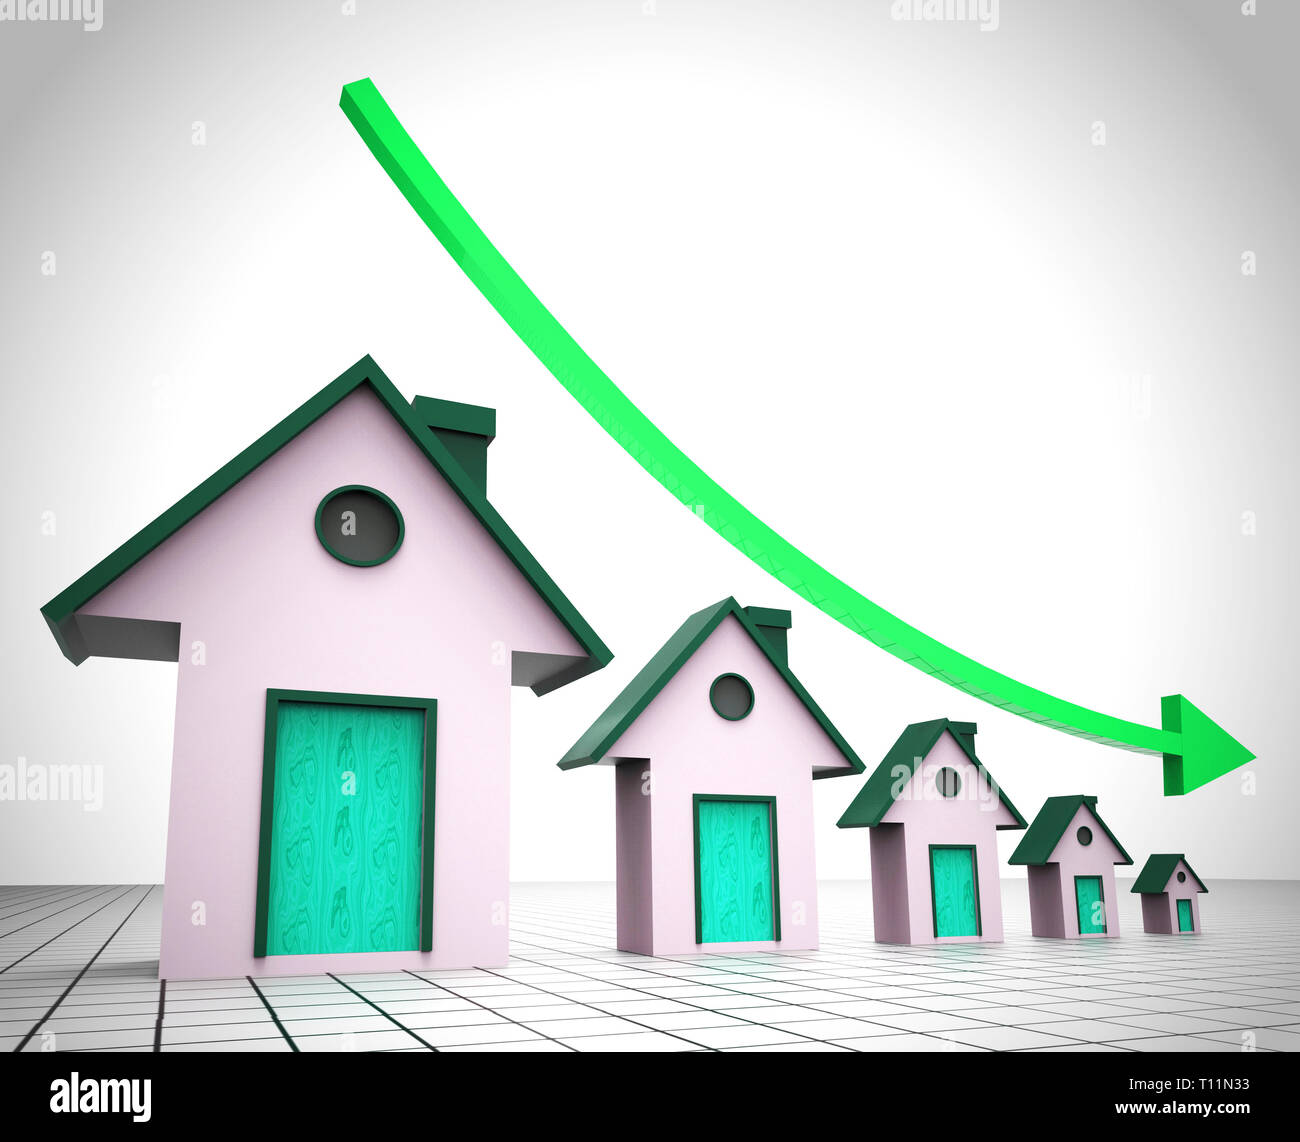 Downsize Home Houses Means Downsizing Property Due To Retirement Or Budget. Find A Tiny House Or Apartment - 3d Illustration - Stock Image